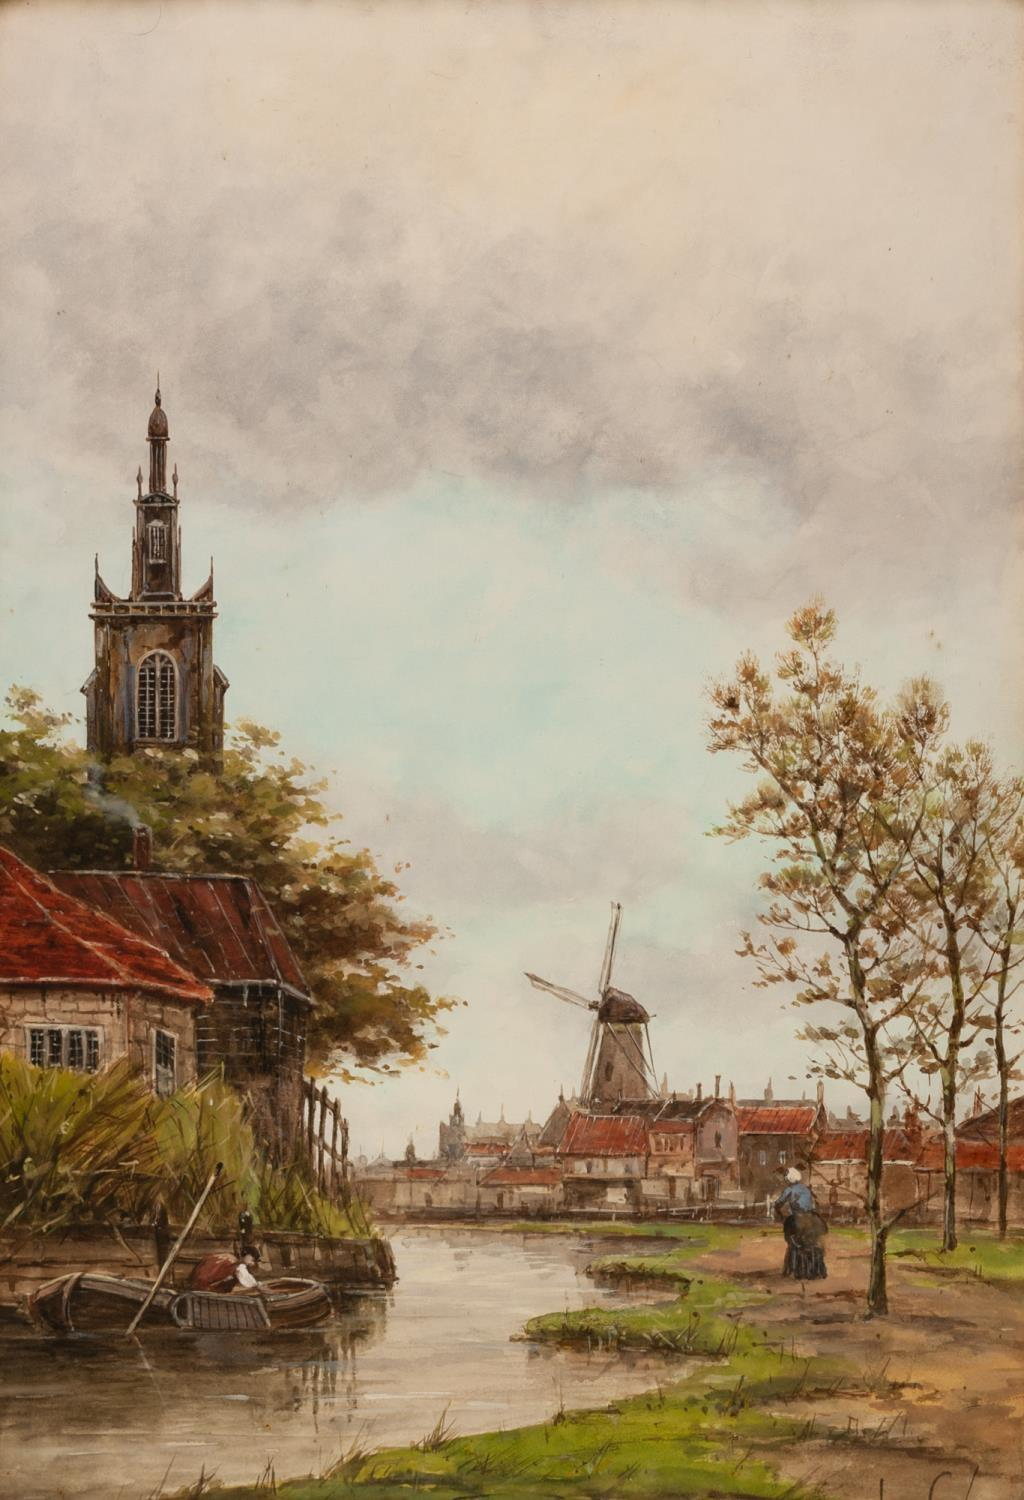 Lot 199 - JAN VAN COUVER (1836-1909) PAIR OF WATERCOLOUR DRAWINGS Dutch canal scenes Signed 20 ¾? x 14? (52.